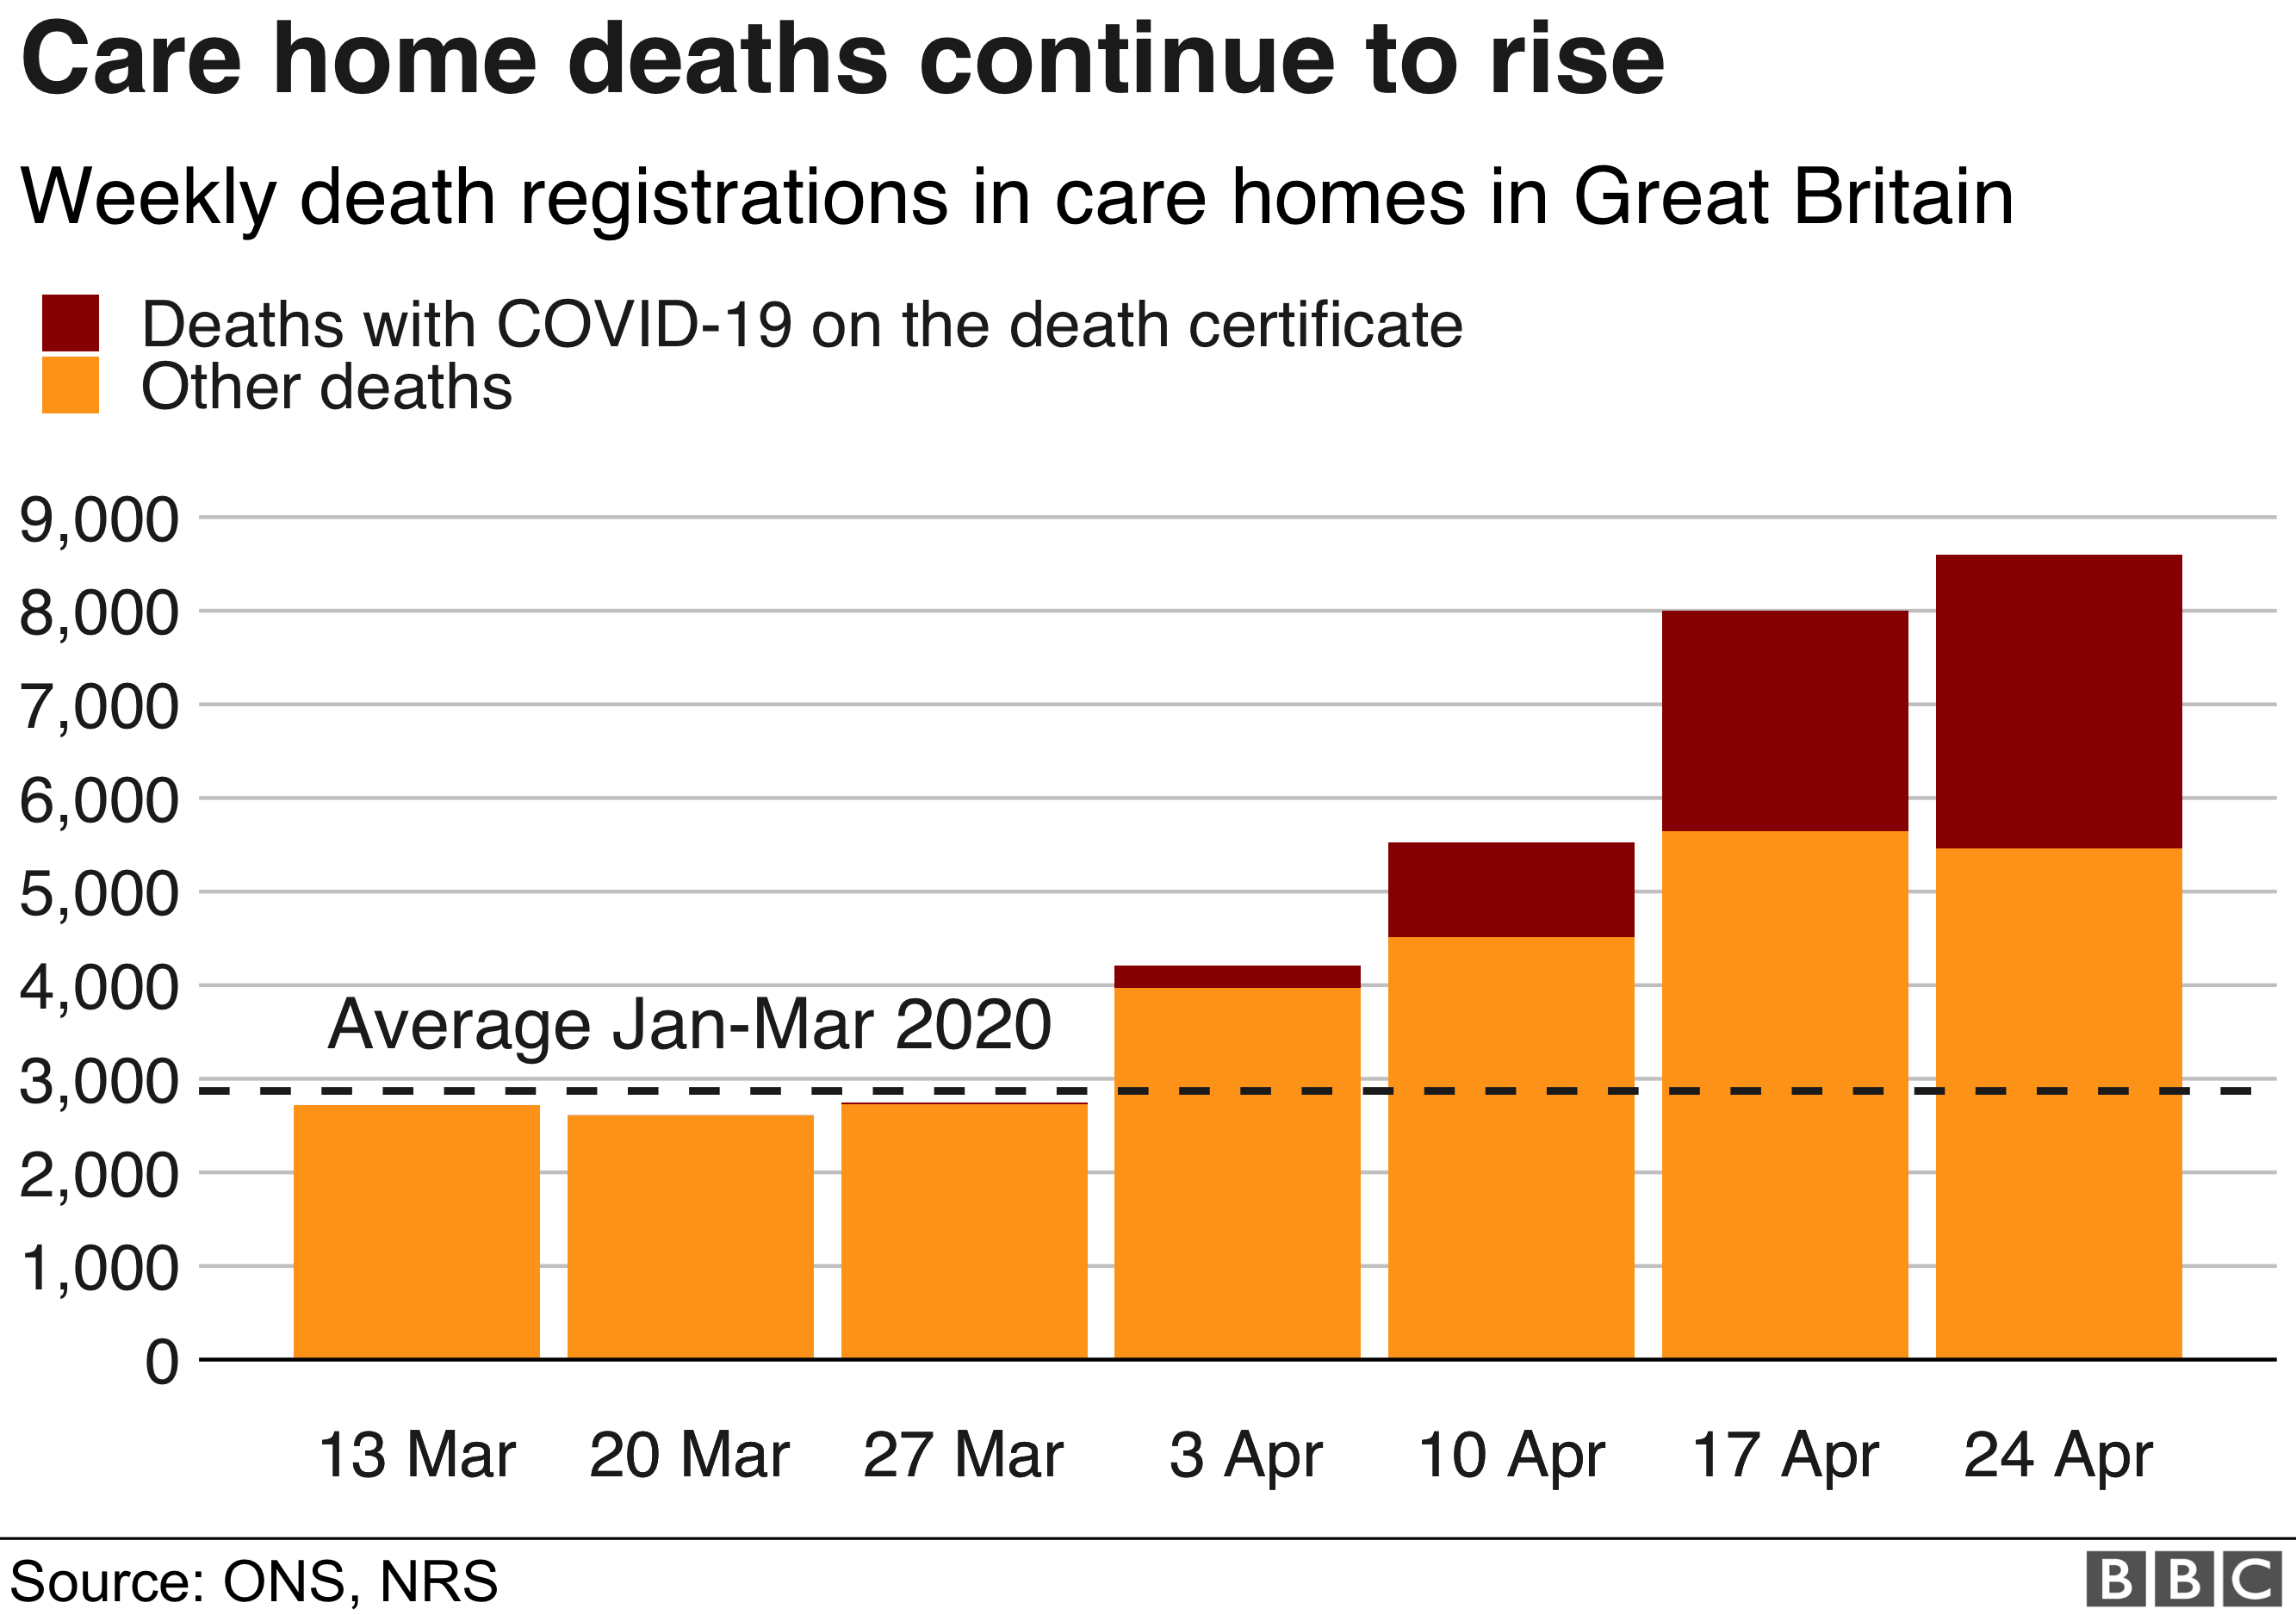 Chart showing deaths in care homes continuing to rise, 5th May